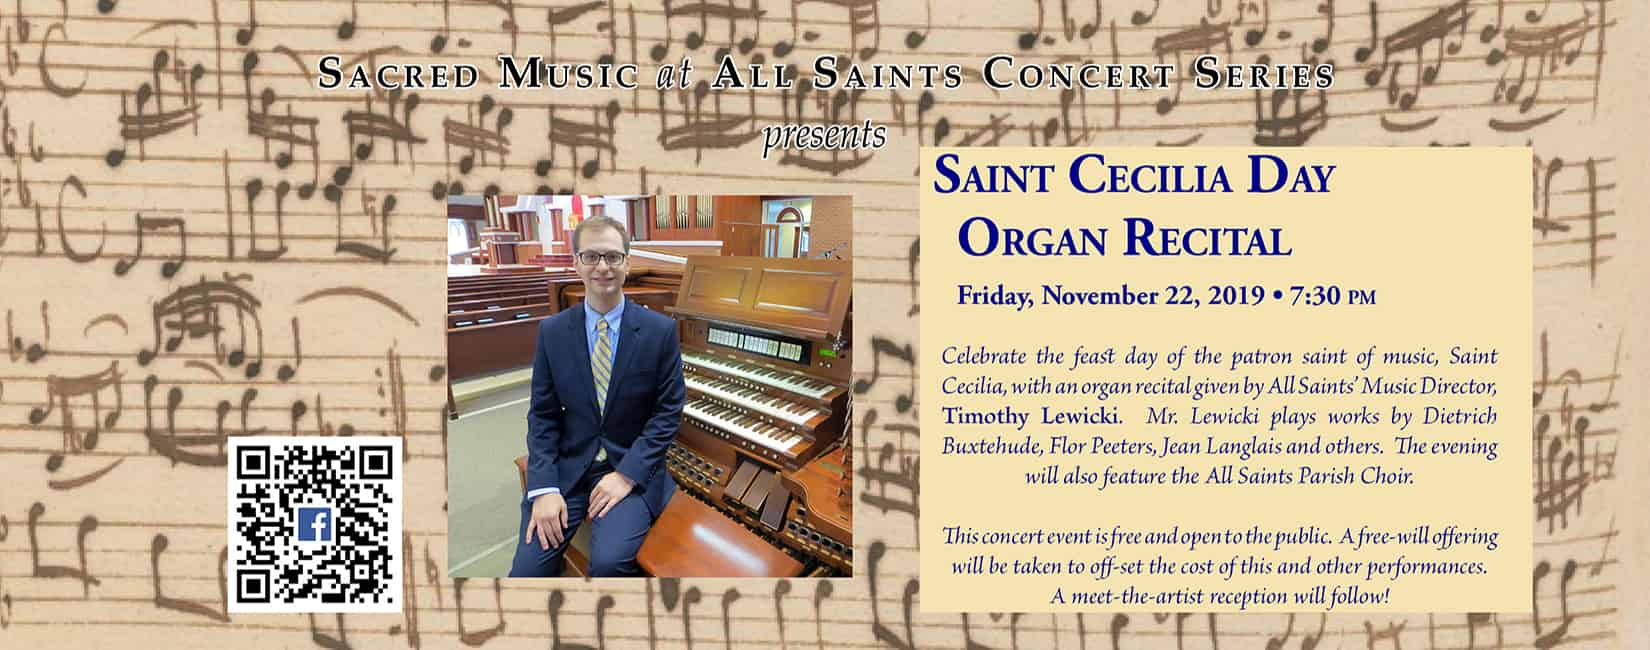 Saints Cecilia Day Organ Recital - All Saints Sacred Music Concert Series - November 22, 2019